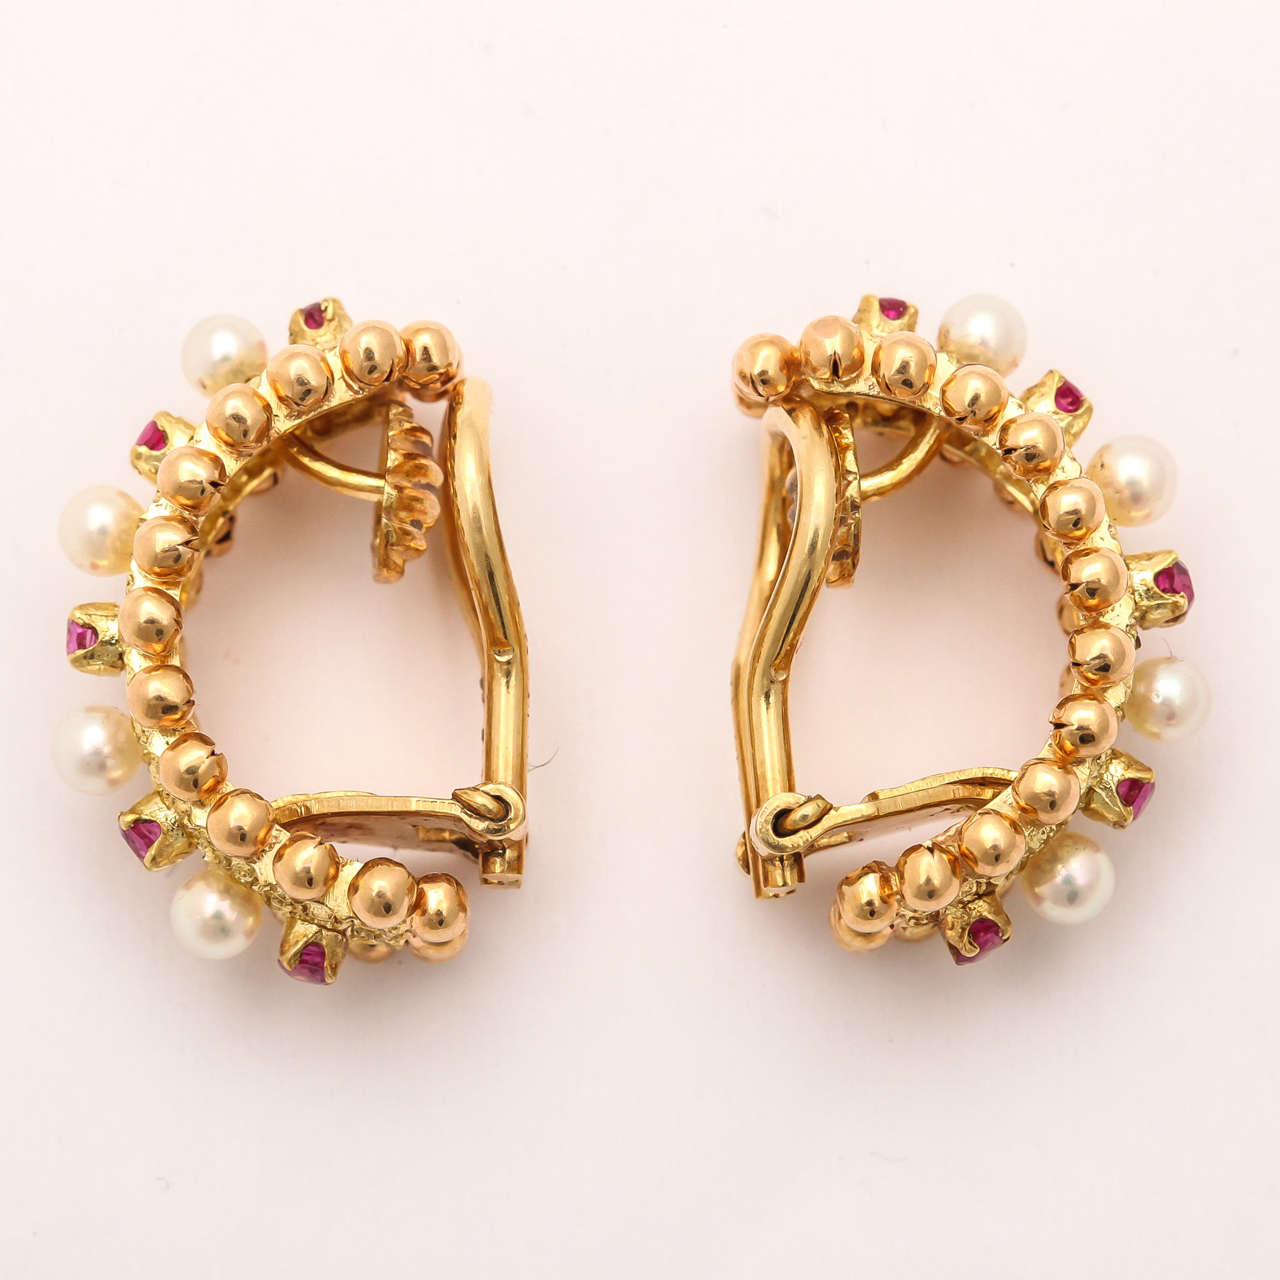 Cartier Italy Pearl Ruby Gold Hoop Earrings 3